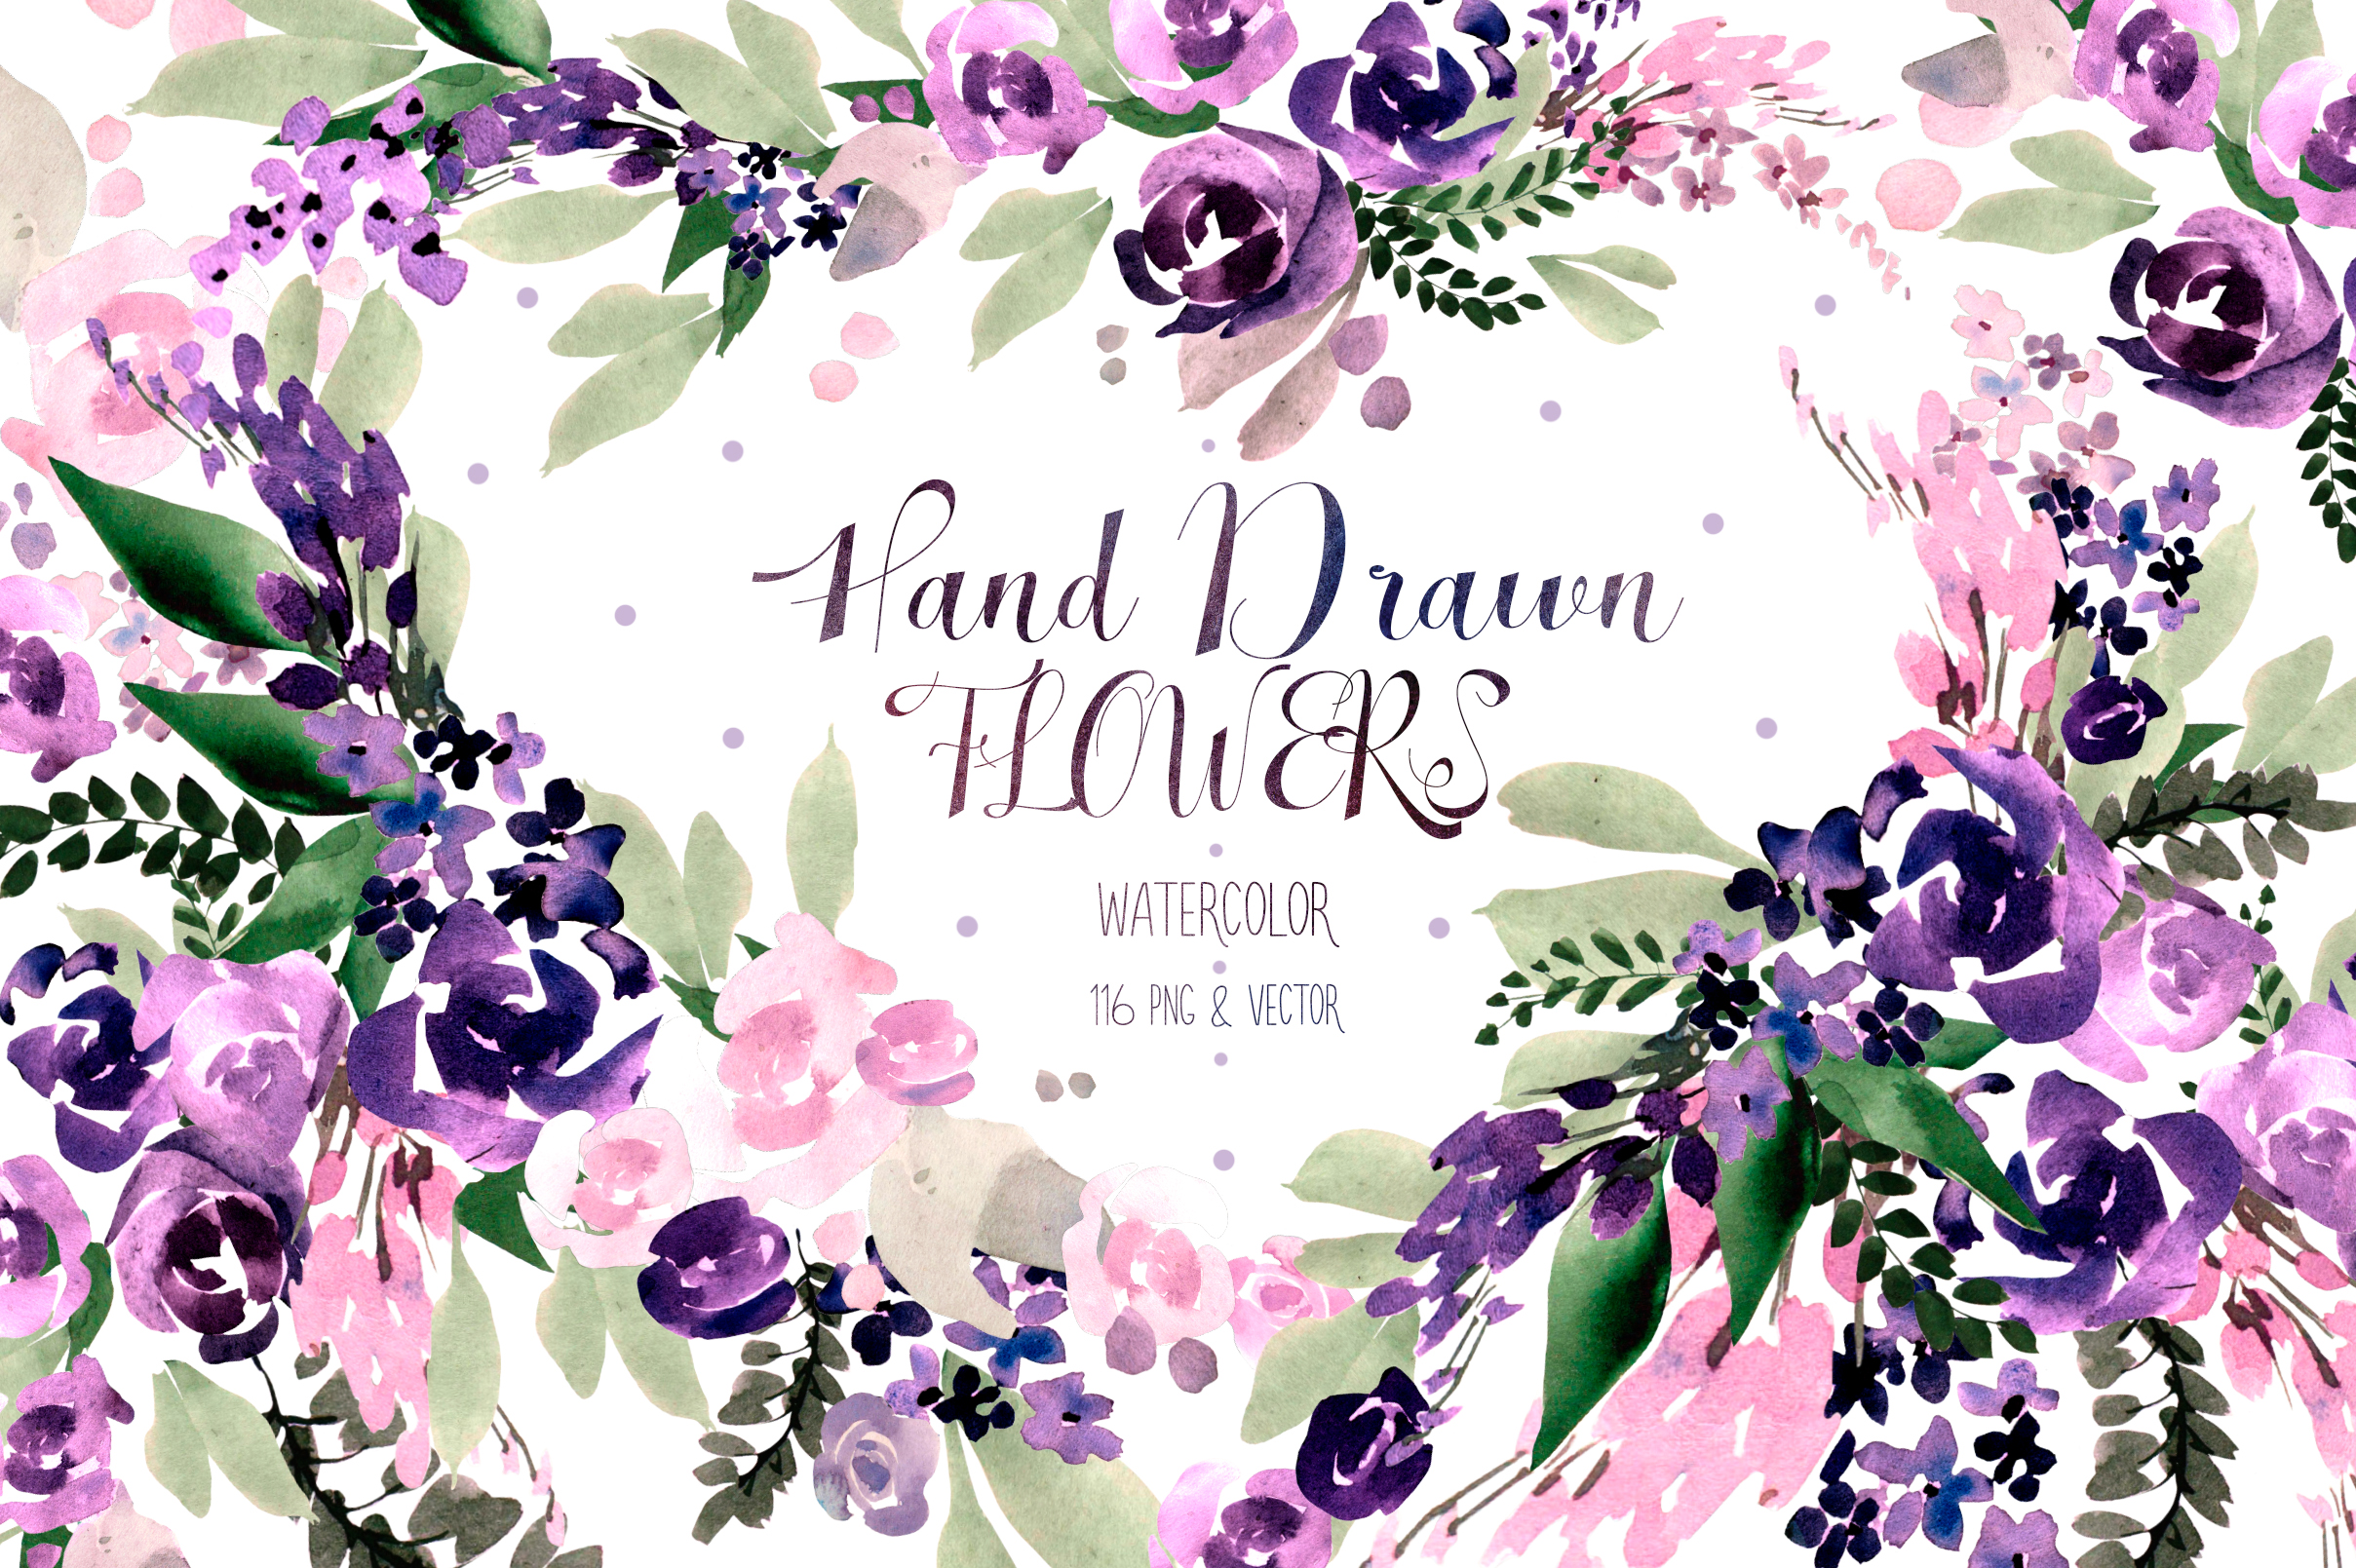 Hand Drawn Watercolor Flowers Graphic Illustrations By Knopazyzy